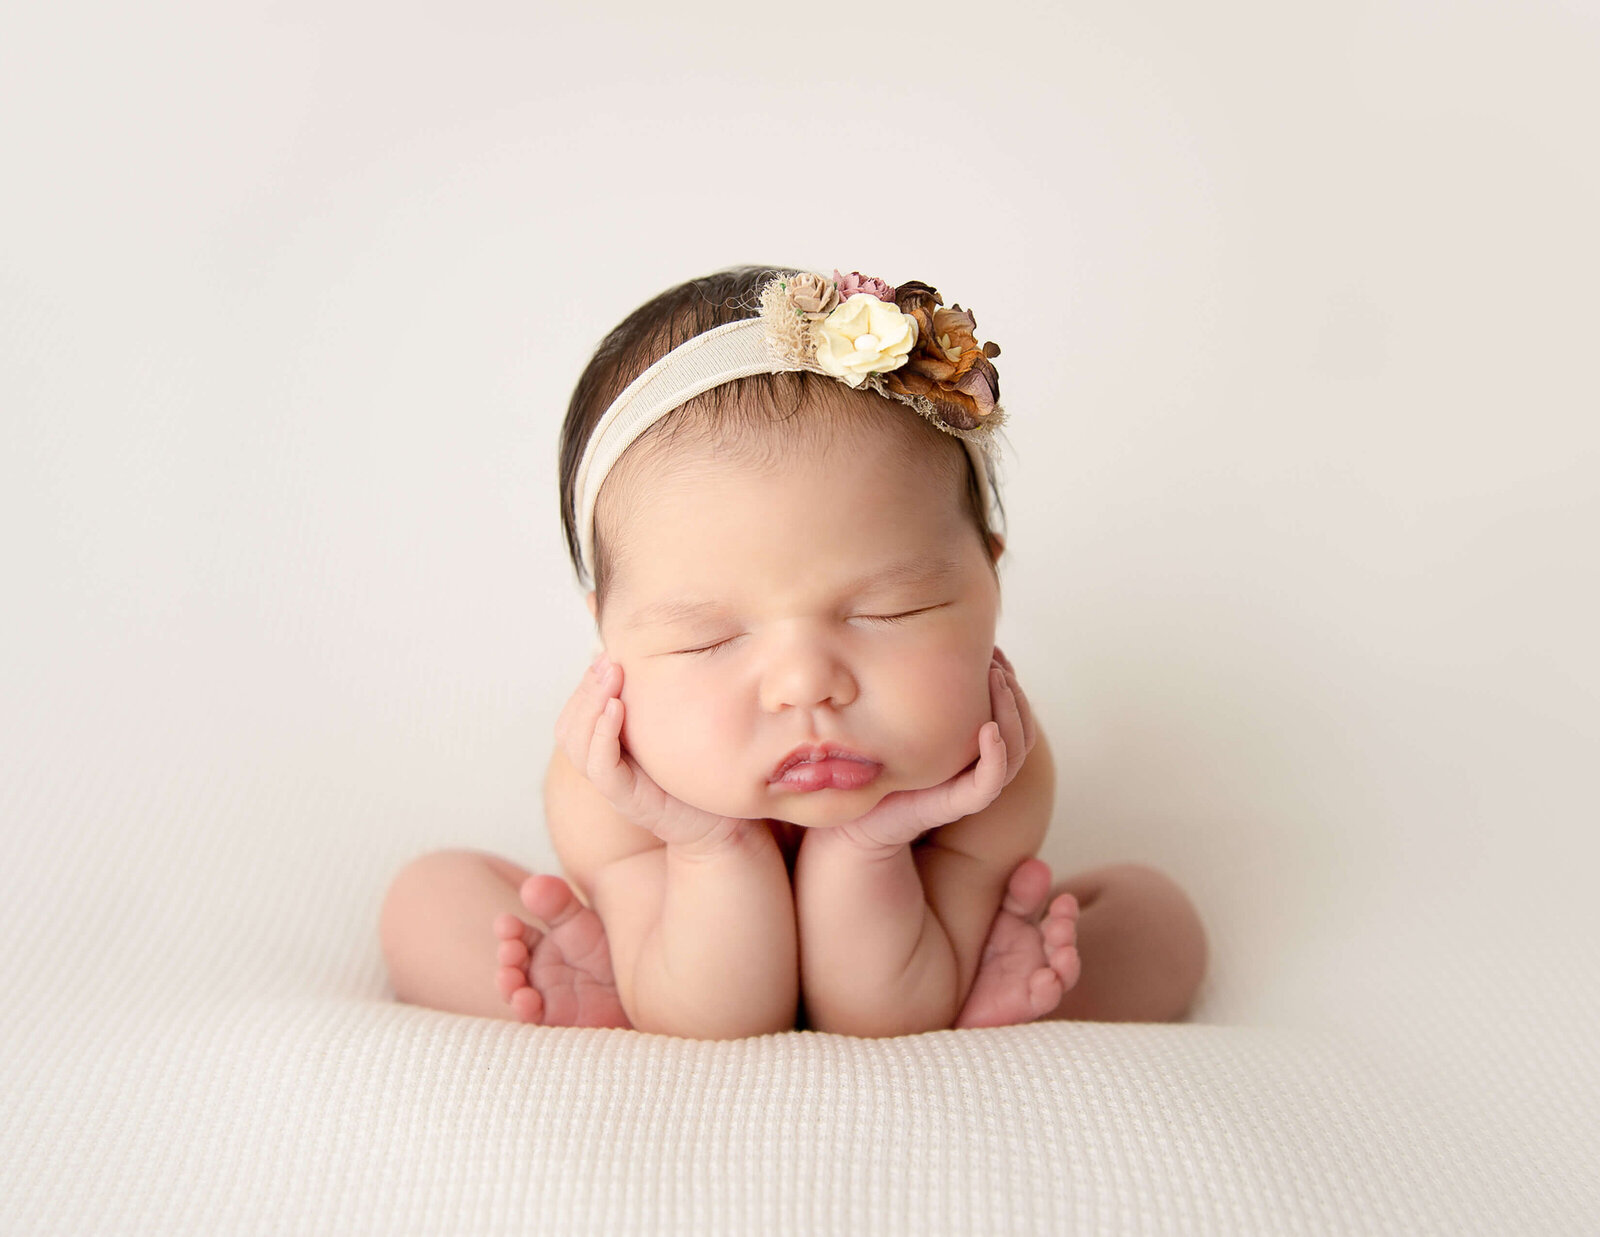 Froggy posed newborn at our studio.